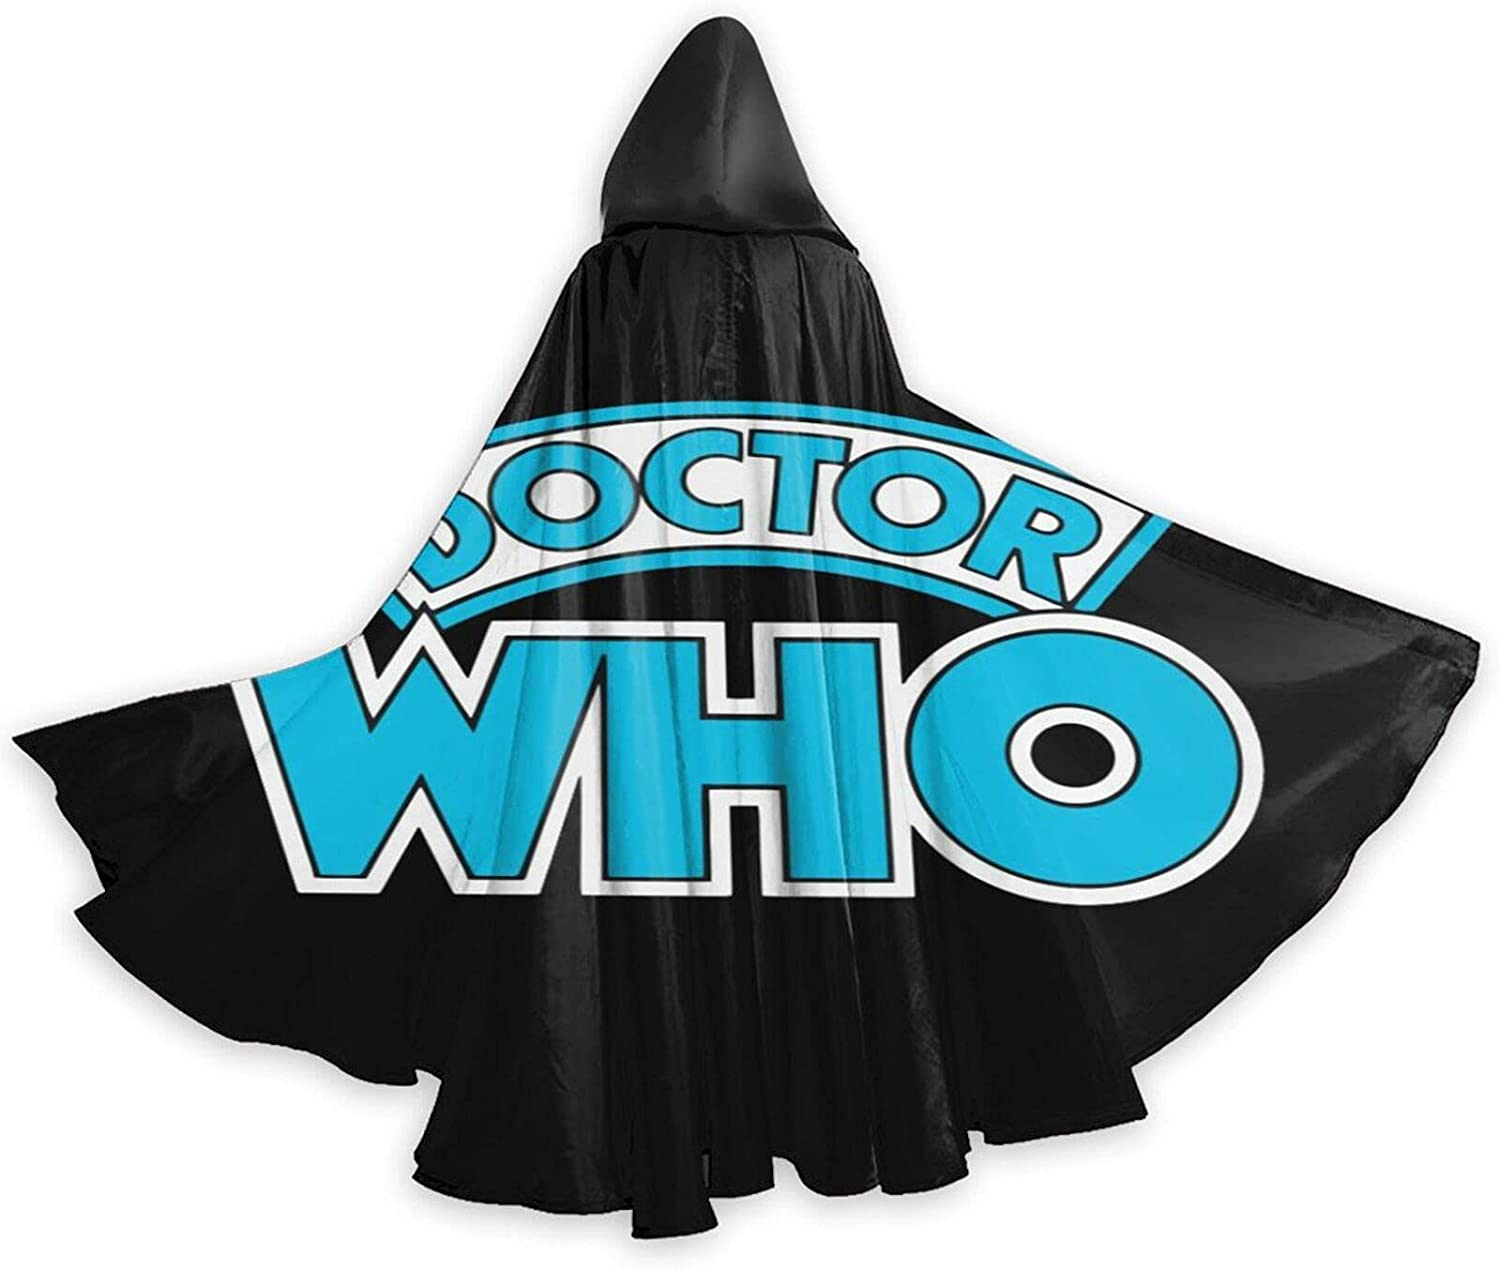 Unisex D-octor Who Hooded Halloween 55% OFF A surprise price is realized Cloak Cosplay Robe Co Wizard